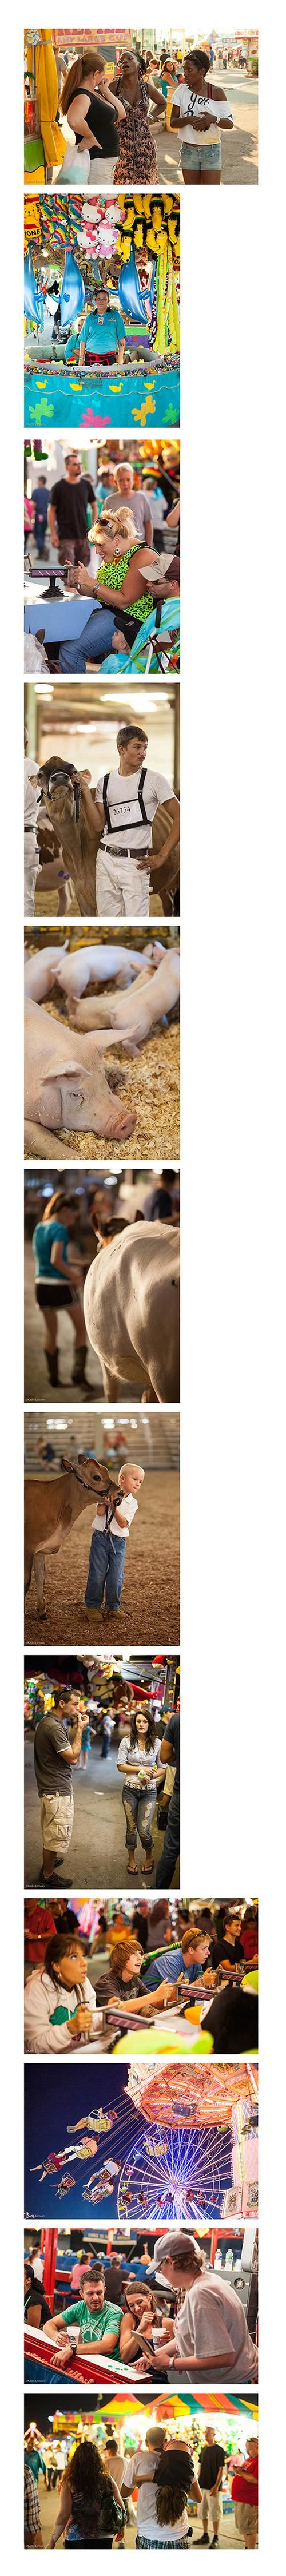 The Great NY State Fair - image 1 - student project